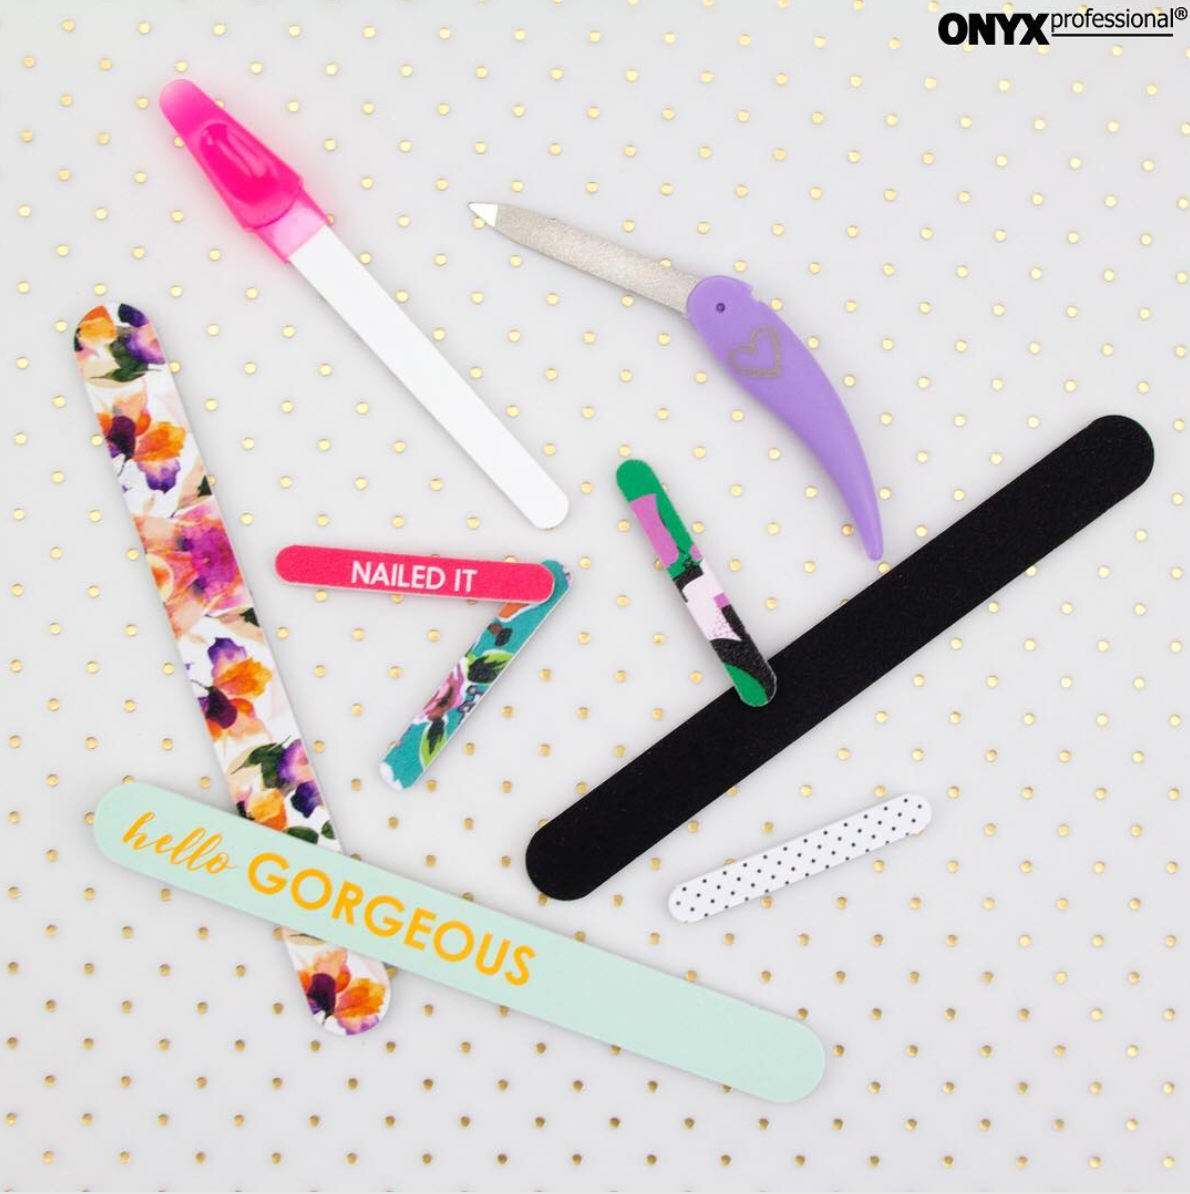 Onyx Brands fashion nail files